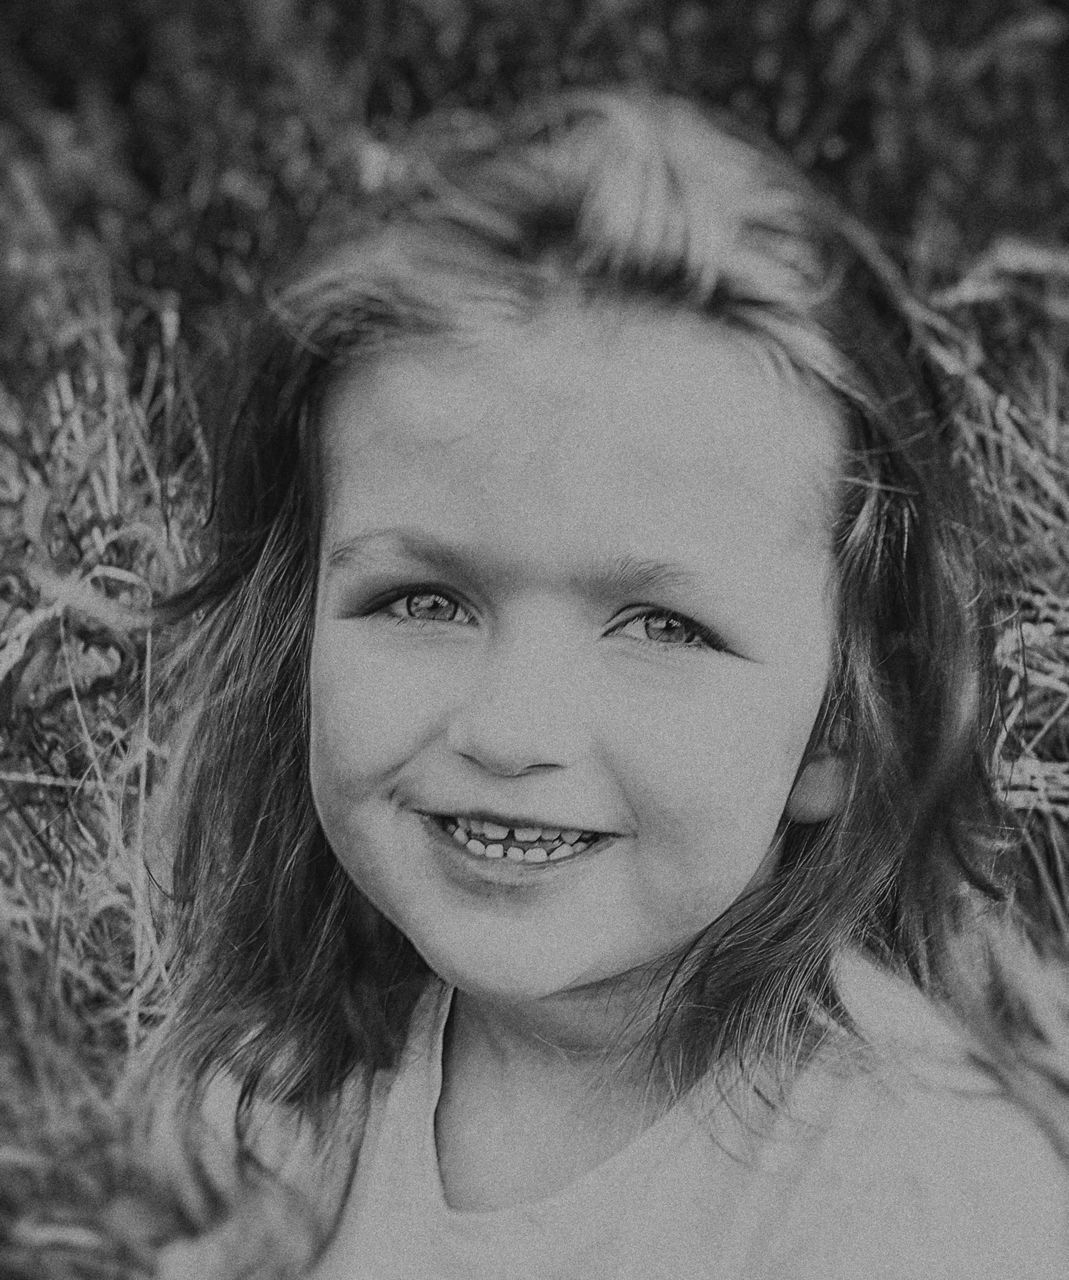 looking at camera, portrait, childhood, one person, smiling, girls, real people, happiness, close-up, headshot, blond hair, human face, day, outdoors, child, young adult, people